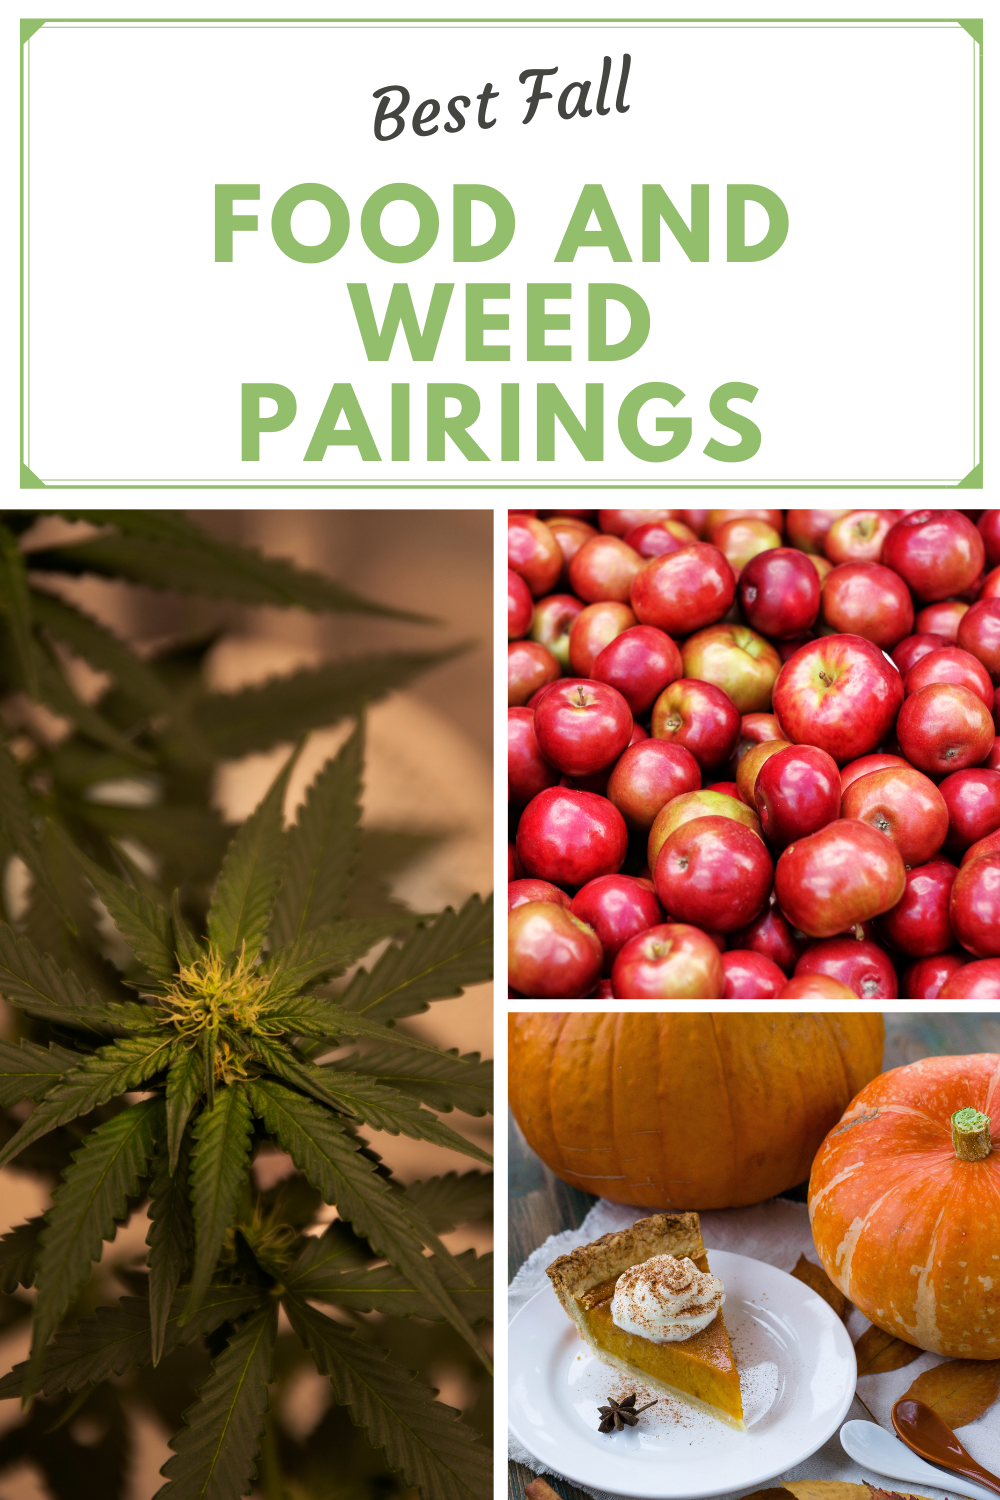 Best Fall Food and Weed Pairings